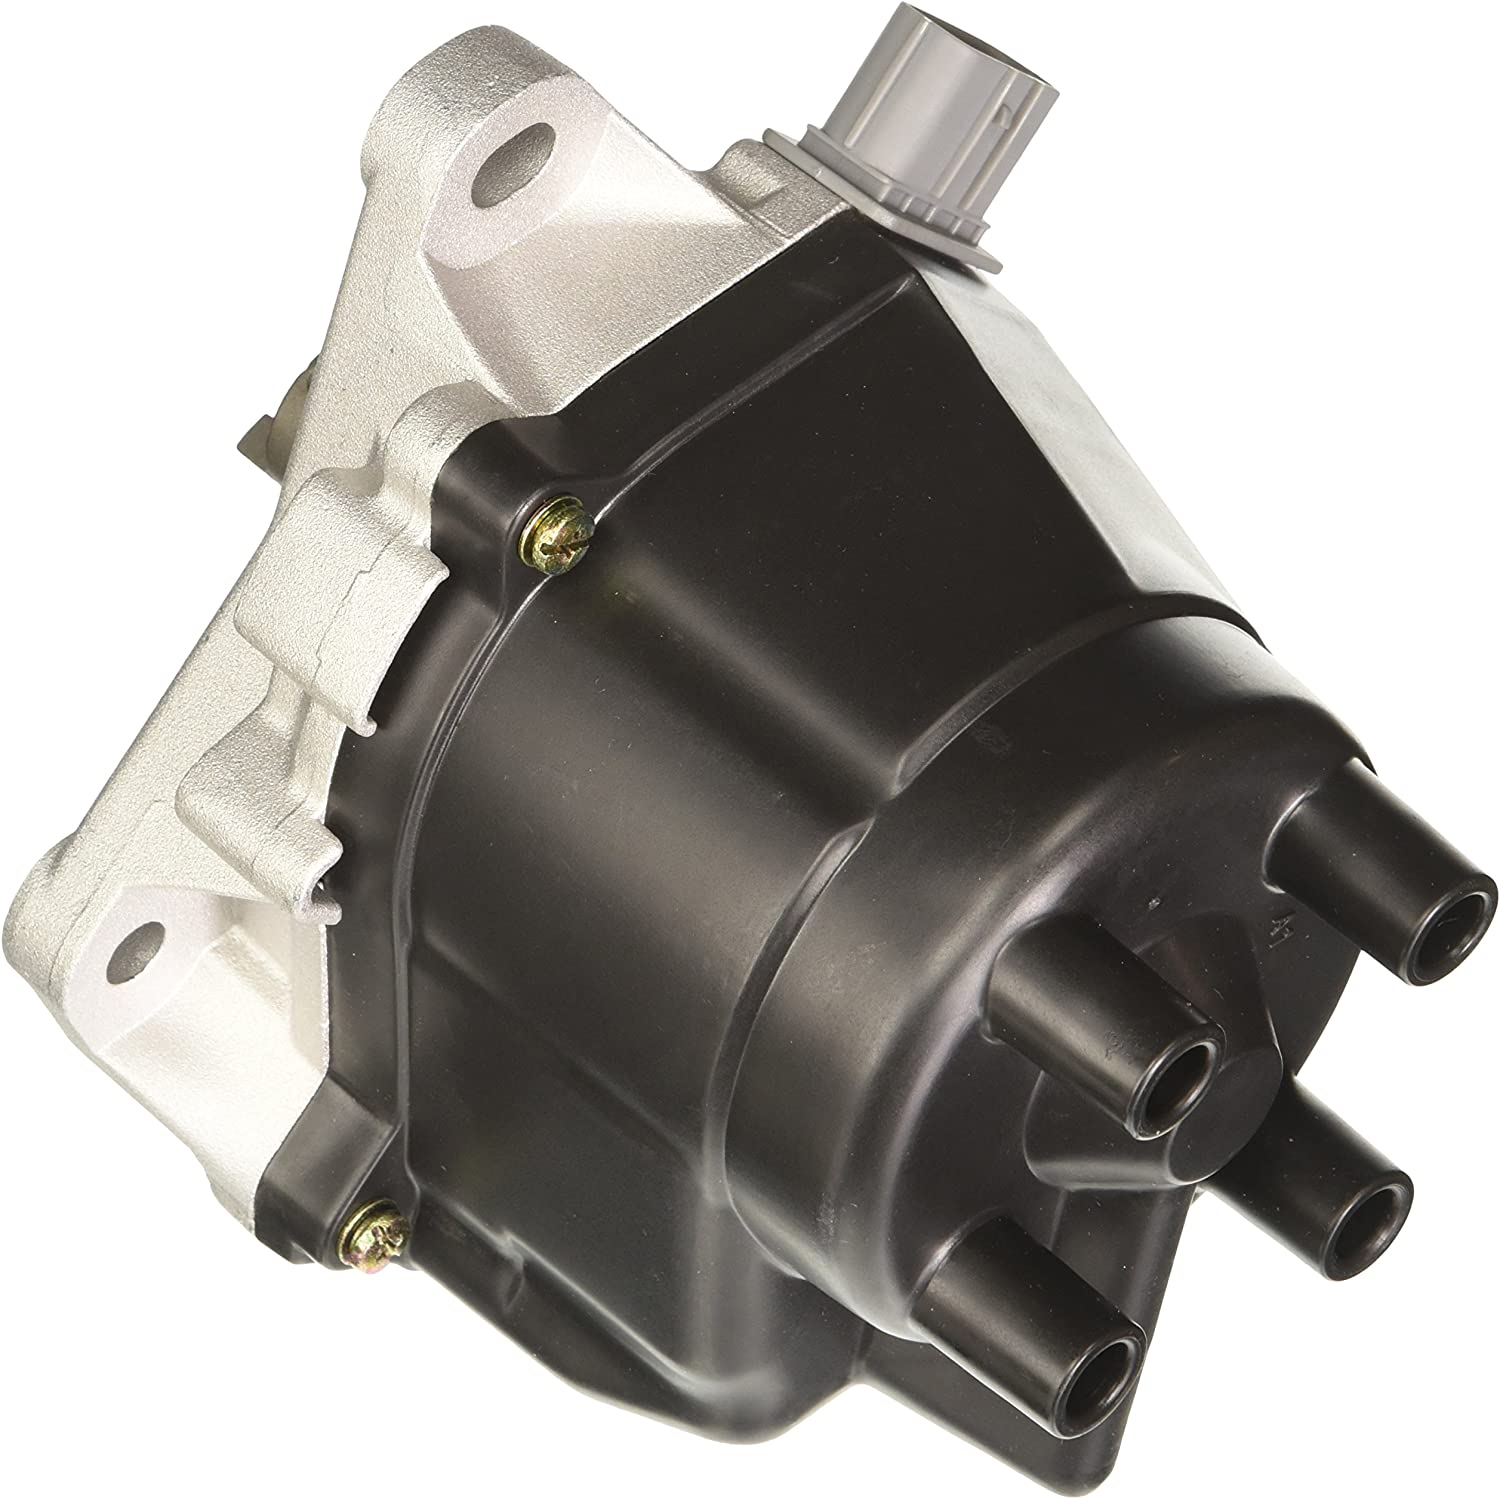 WAIglobal DST17450 New Ignition Distributor